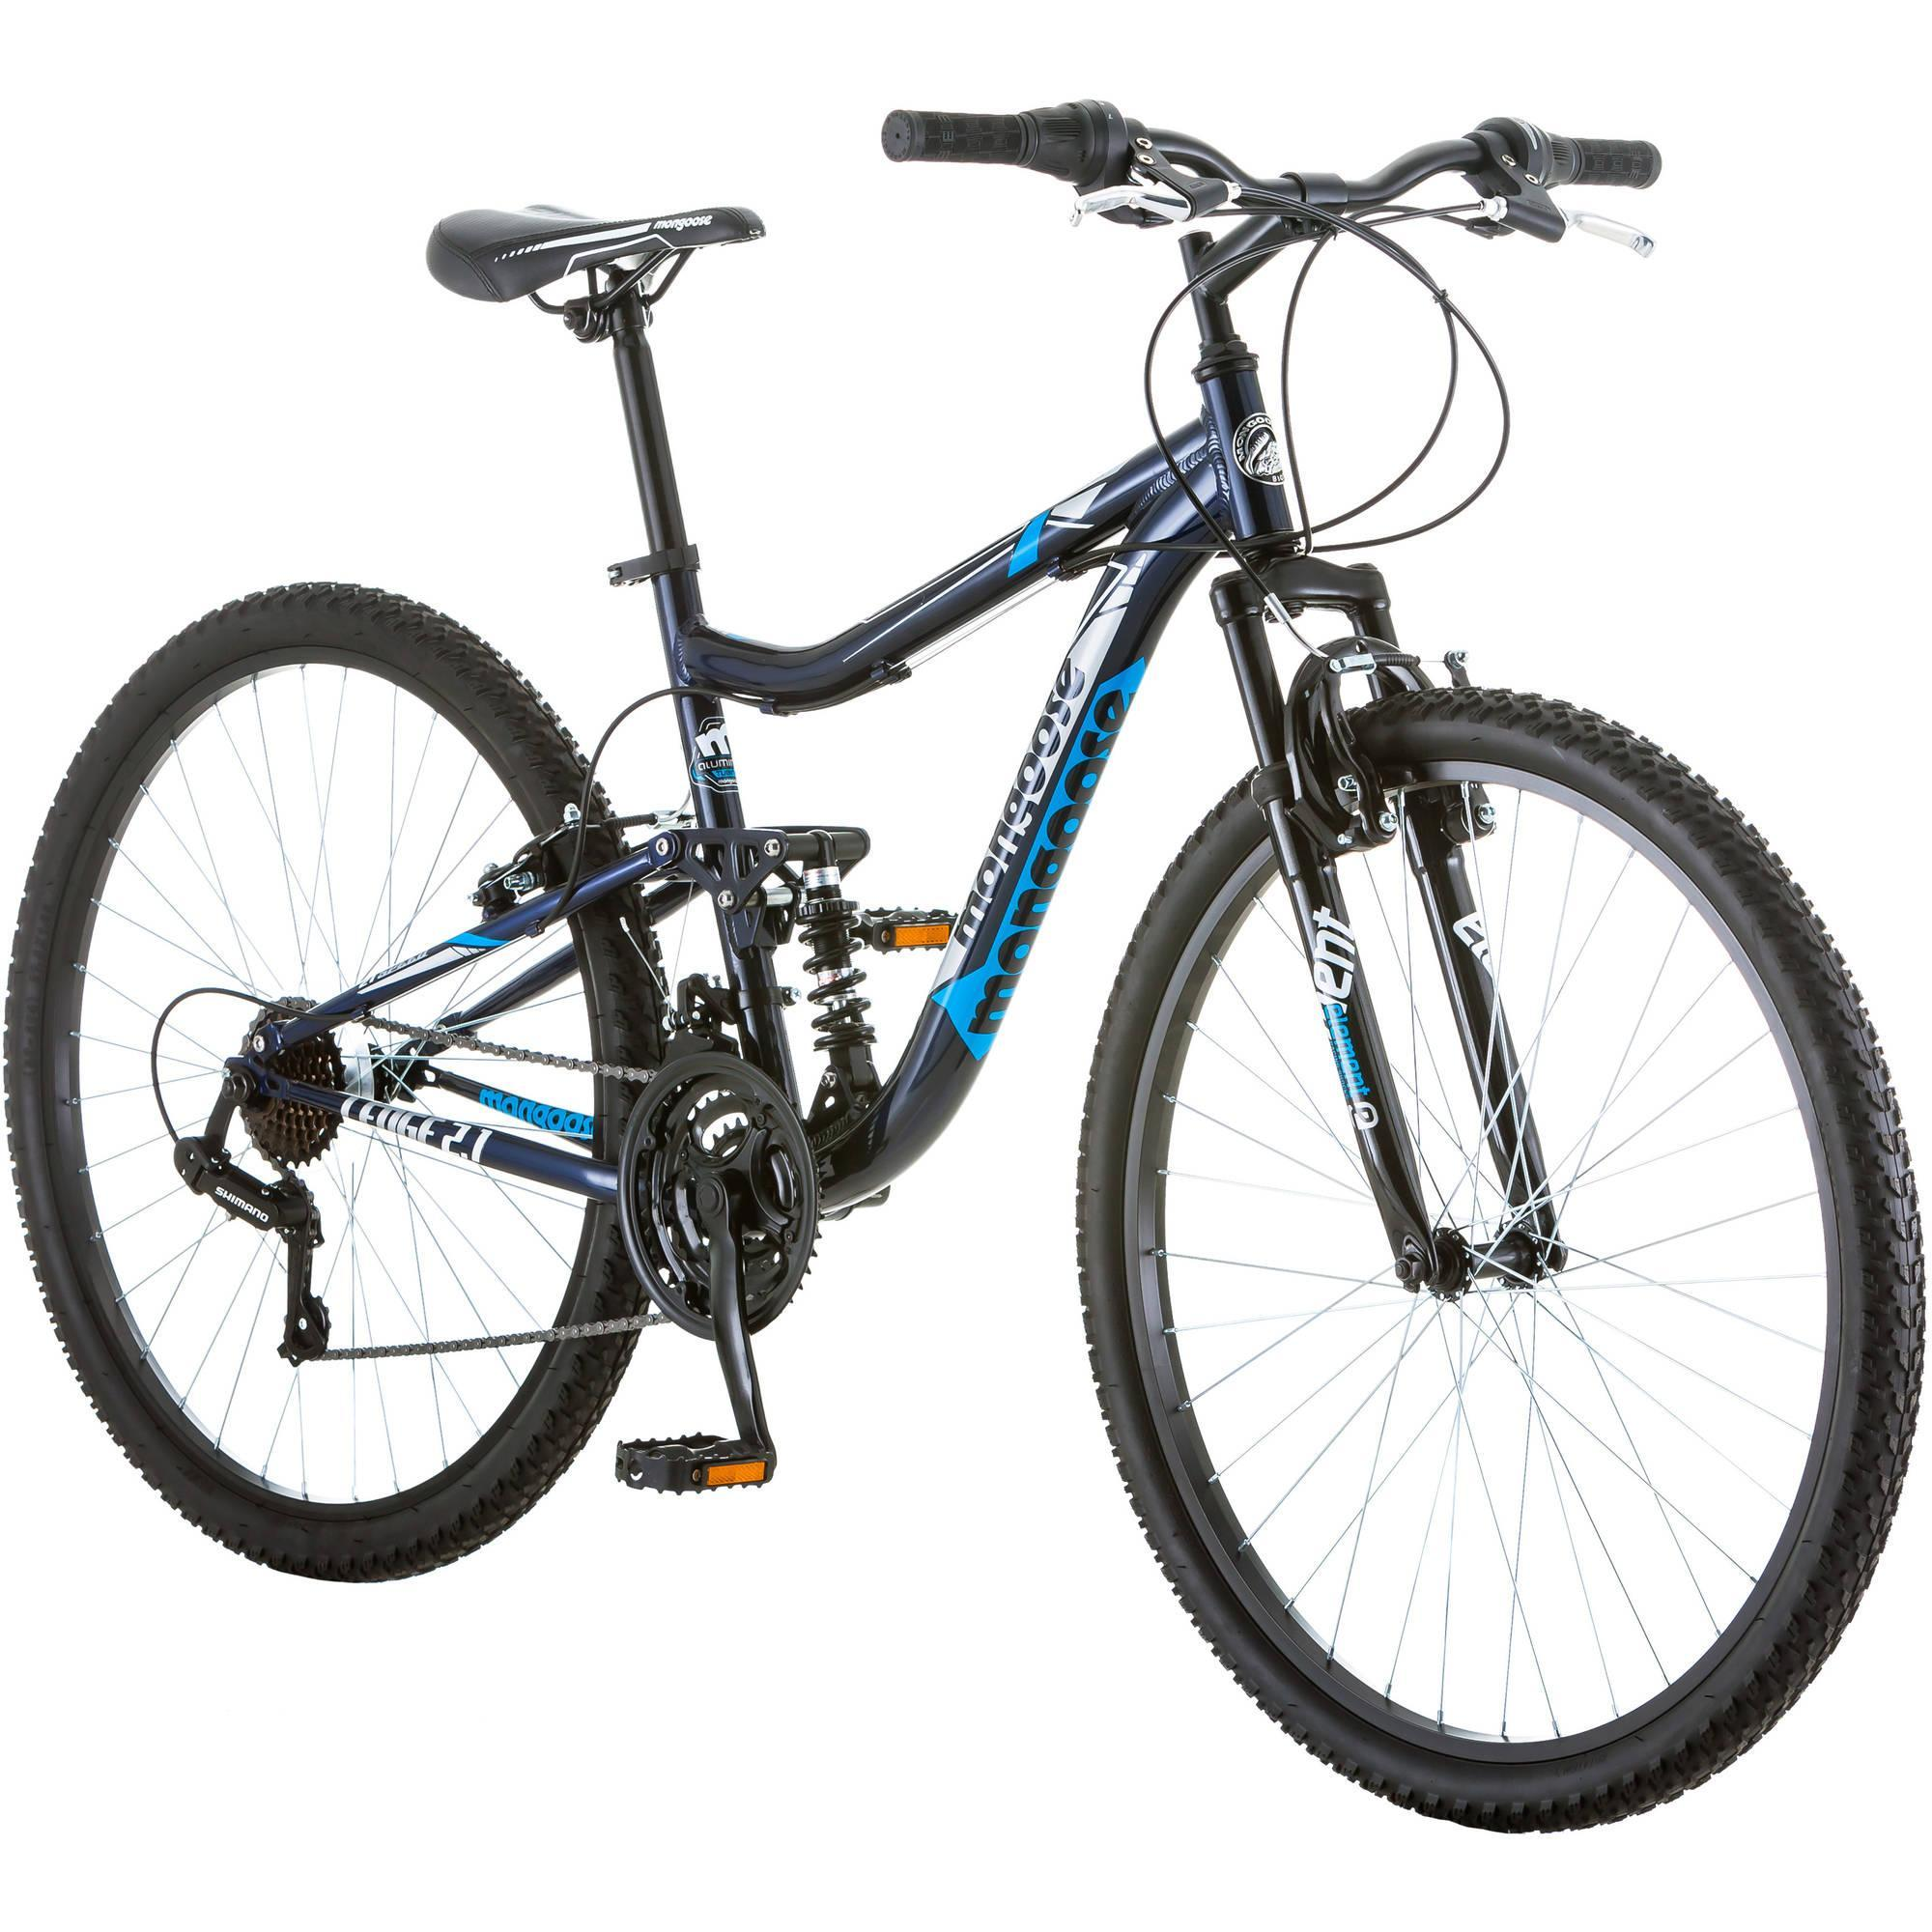 "27.5"" Mongoose Ledge 2.1 Men's Bike"